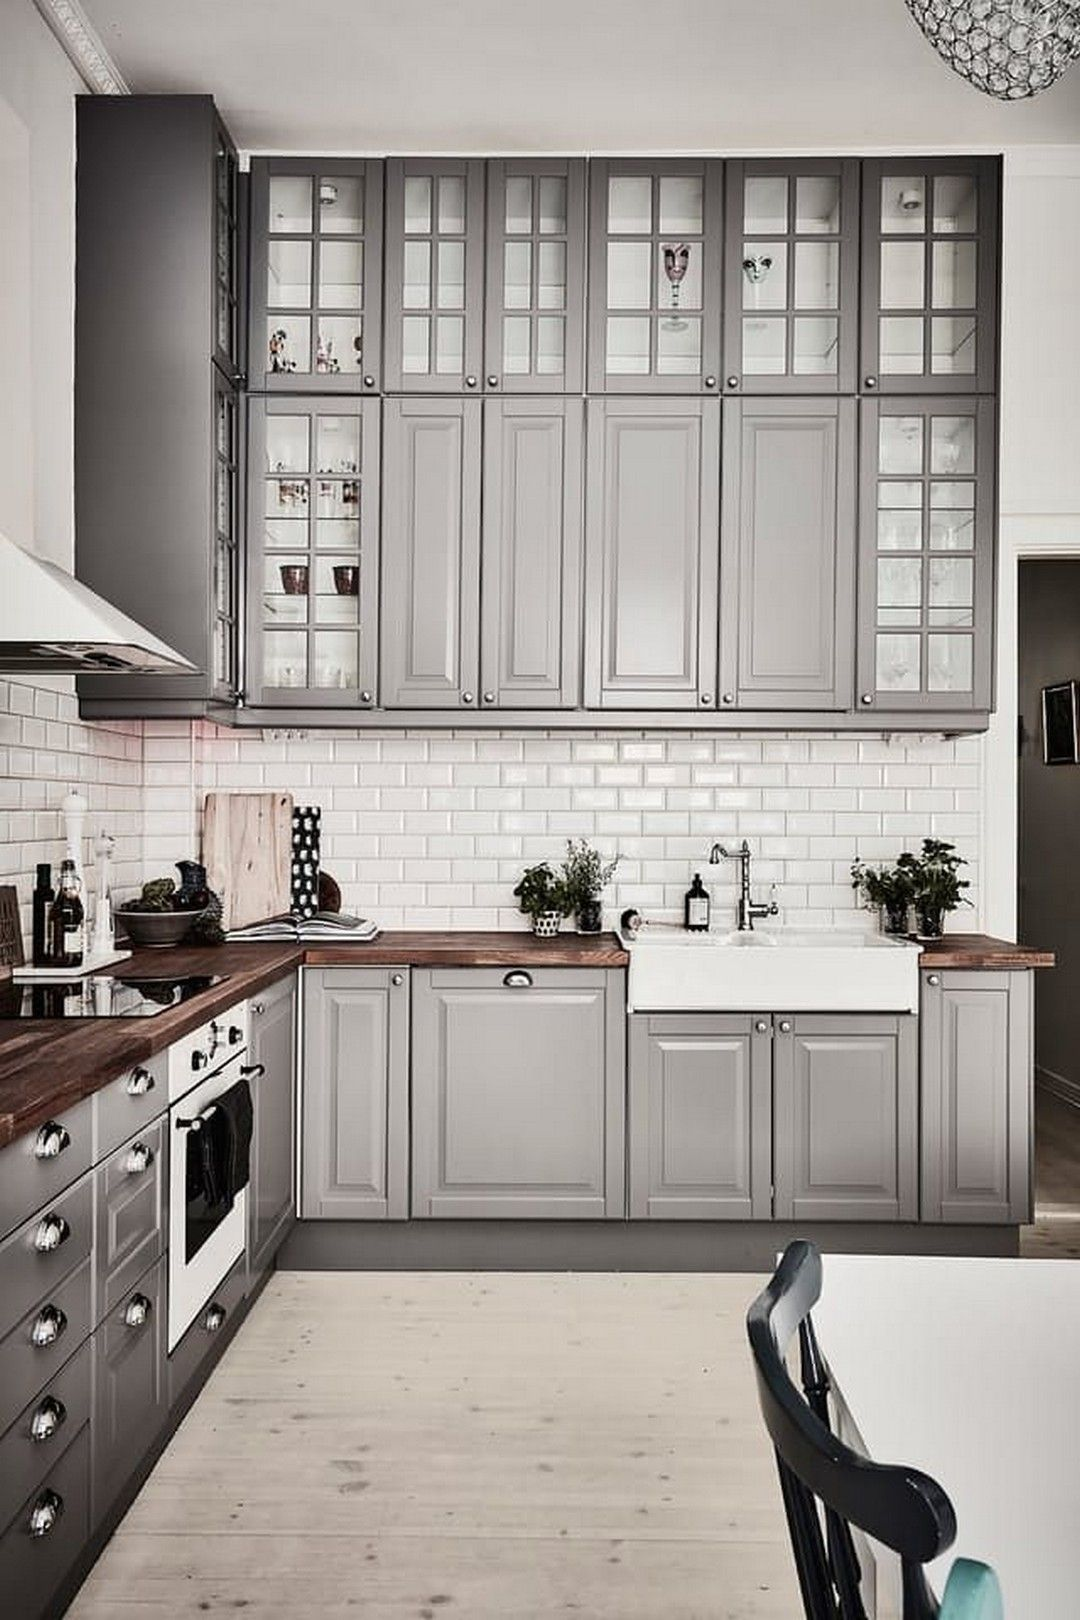 23 kitchen decor with these affordable makeover ideas kitchen rh pinterest com